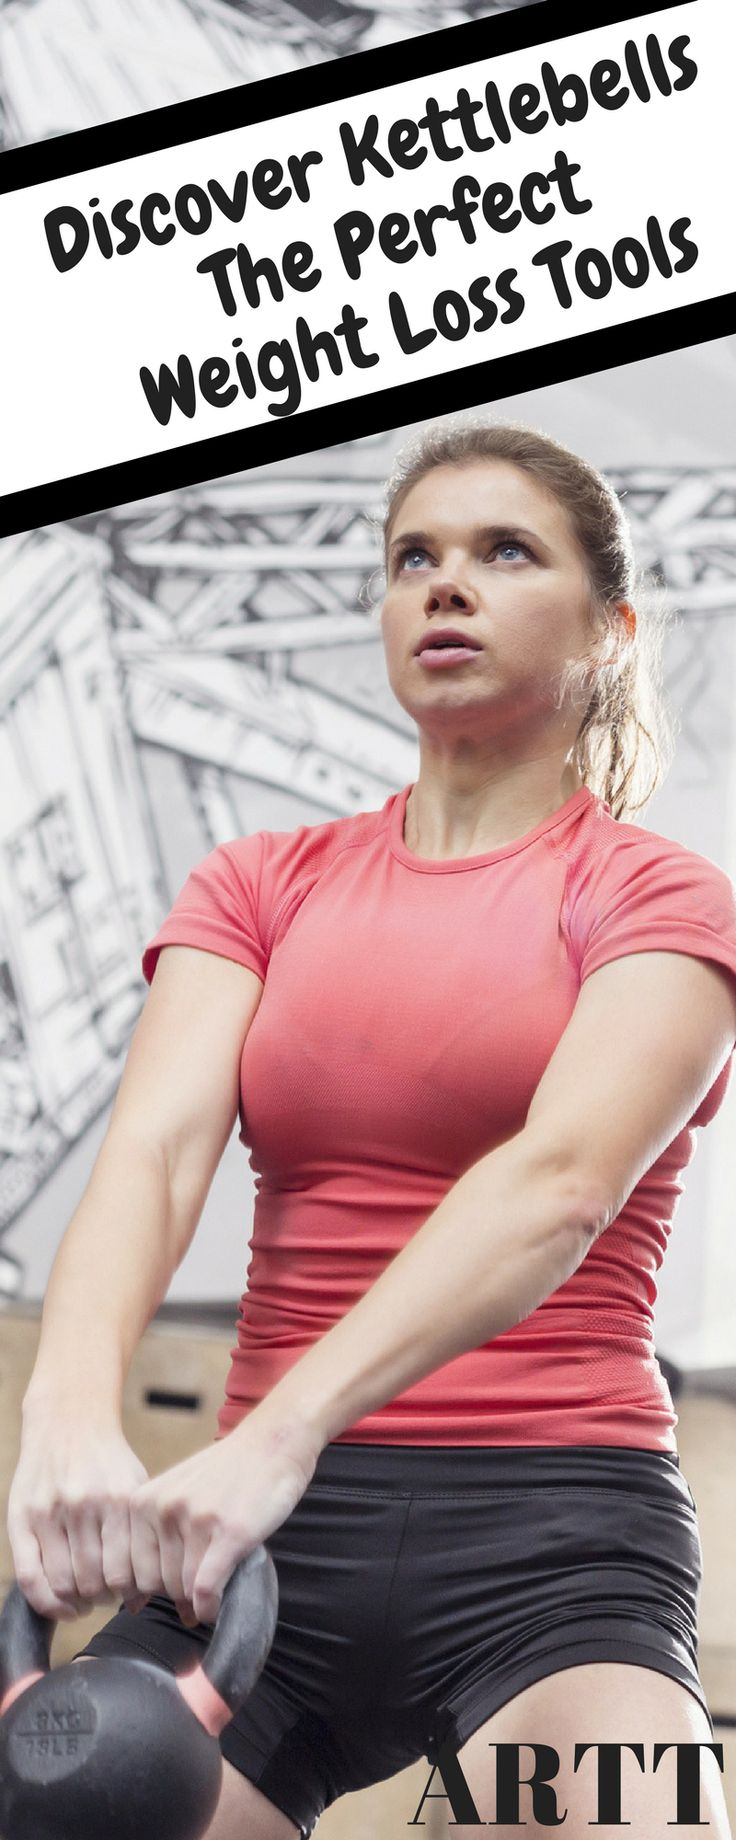 Use the Kettlebells for the pefect cardio, upper body and lowe body workout program.  Burn fat while you build muscles. CardioWorkout | FitnessForWomen | Workout | FitnessMotivation |   ExcerciseforWomen | #workout #loseweight #weightloss #ARTT